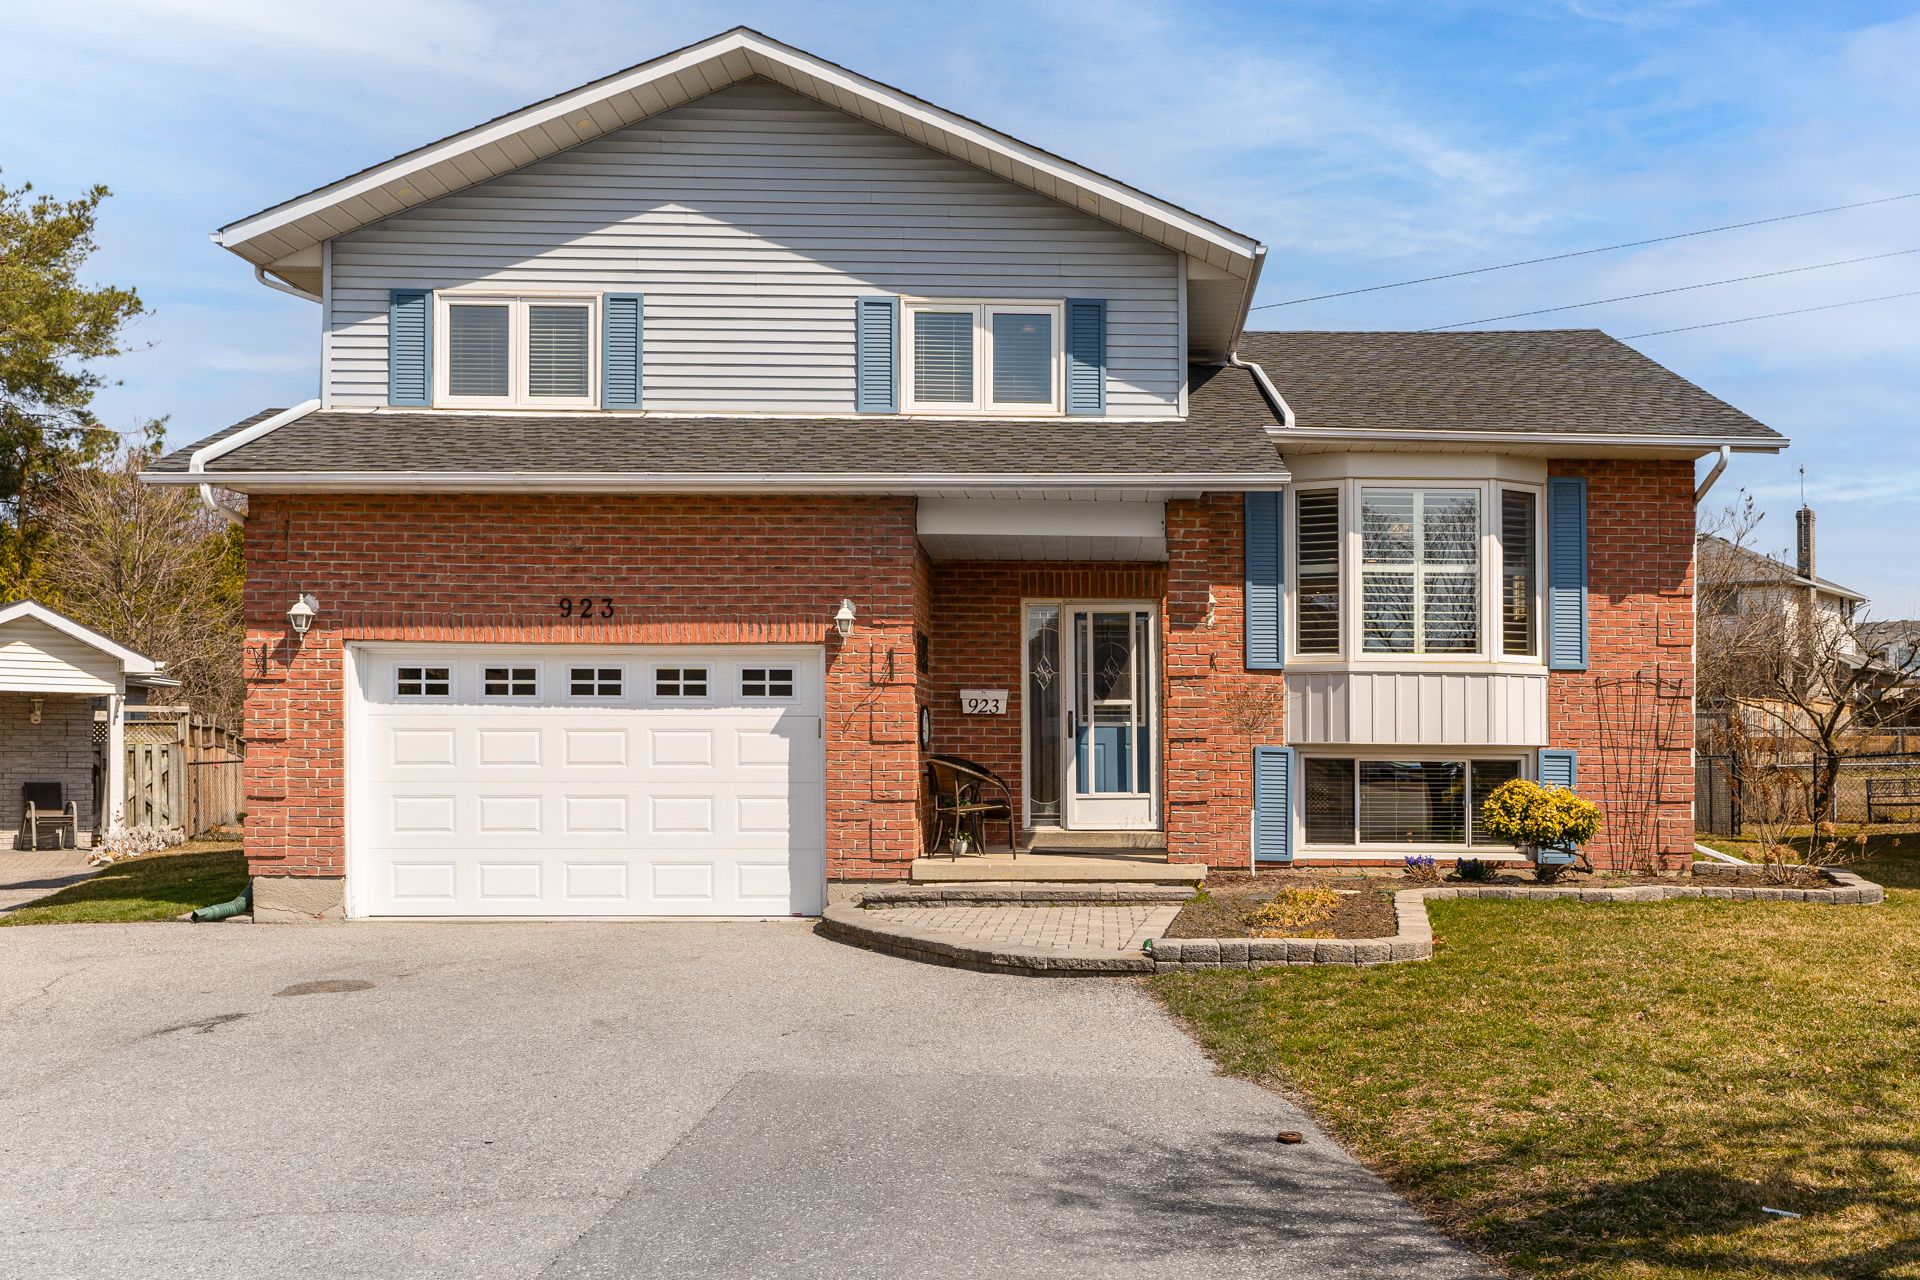 Main Photo: 923 Cresthill Court: Oshawa Freehold for sale (Durham)